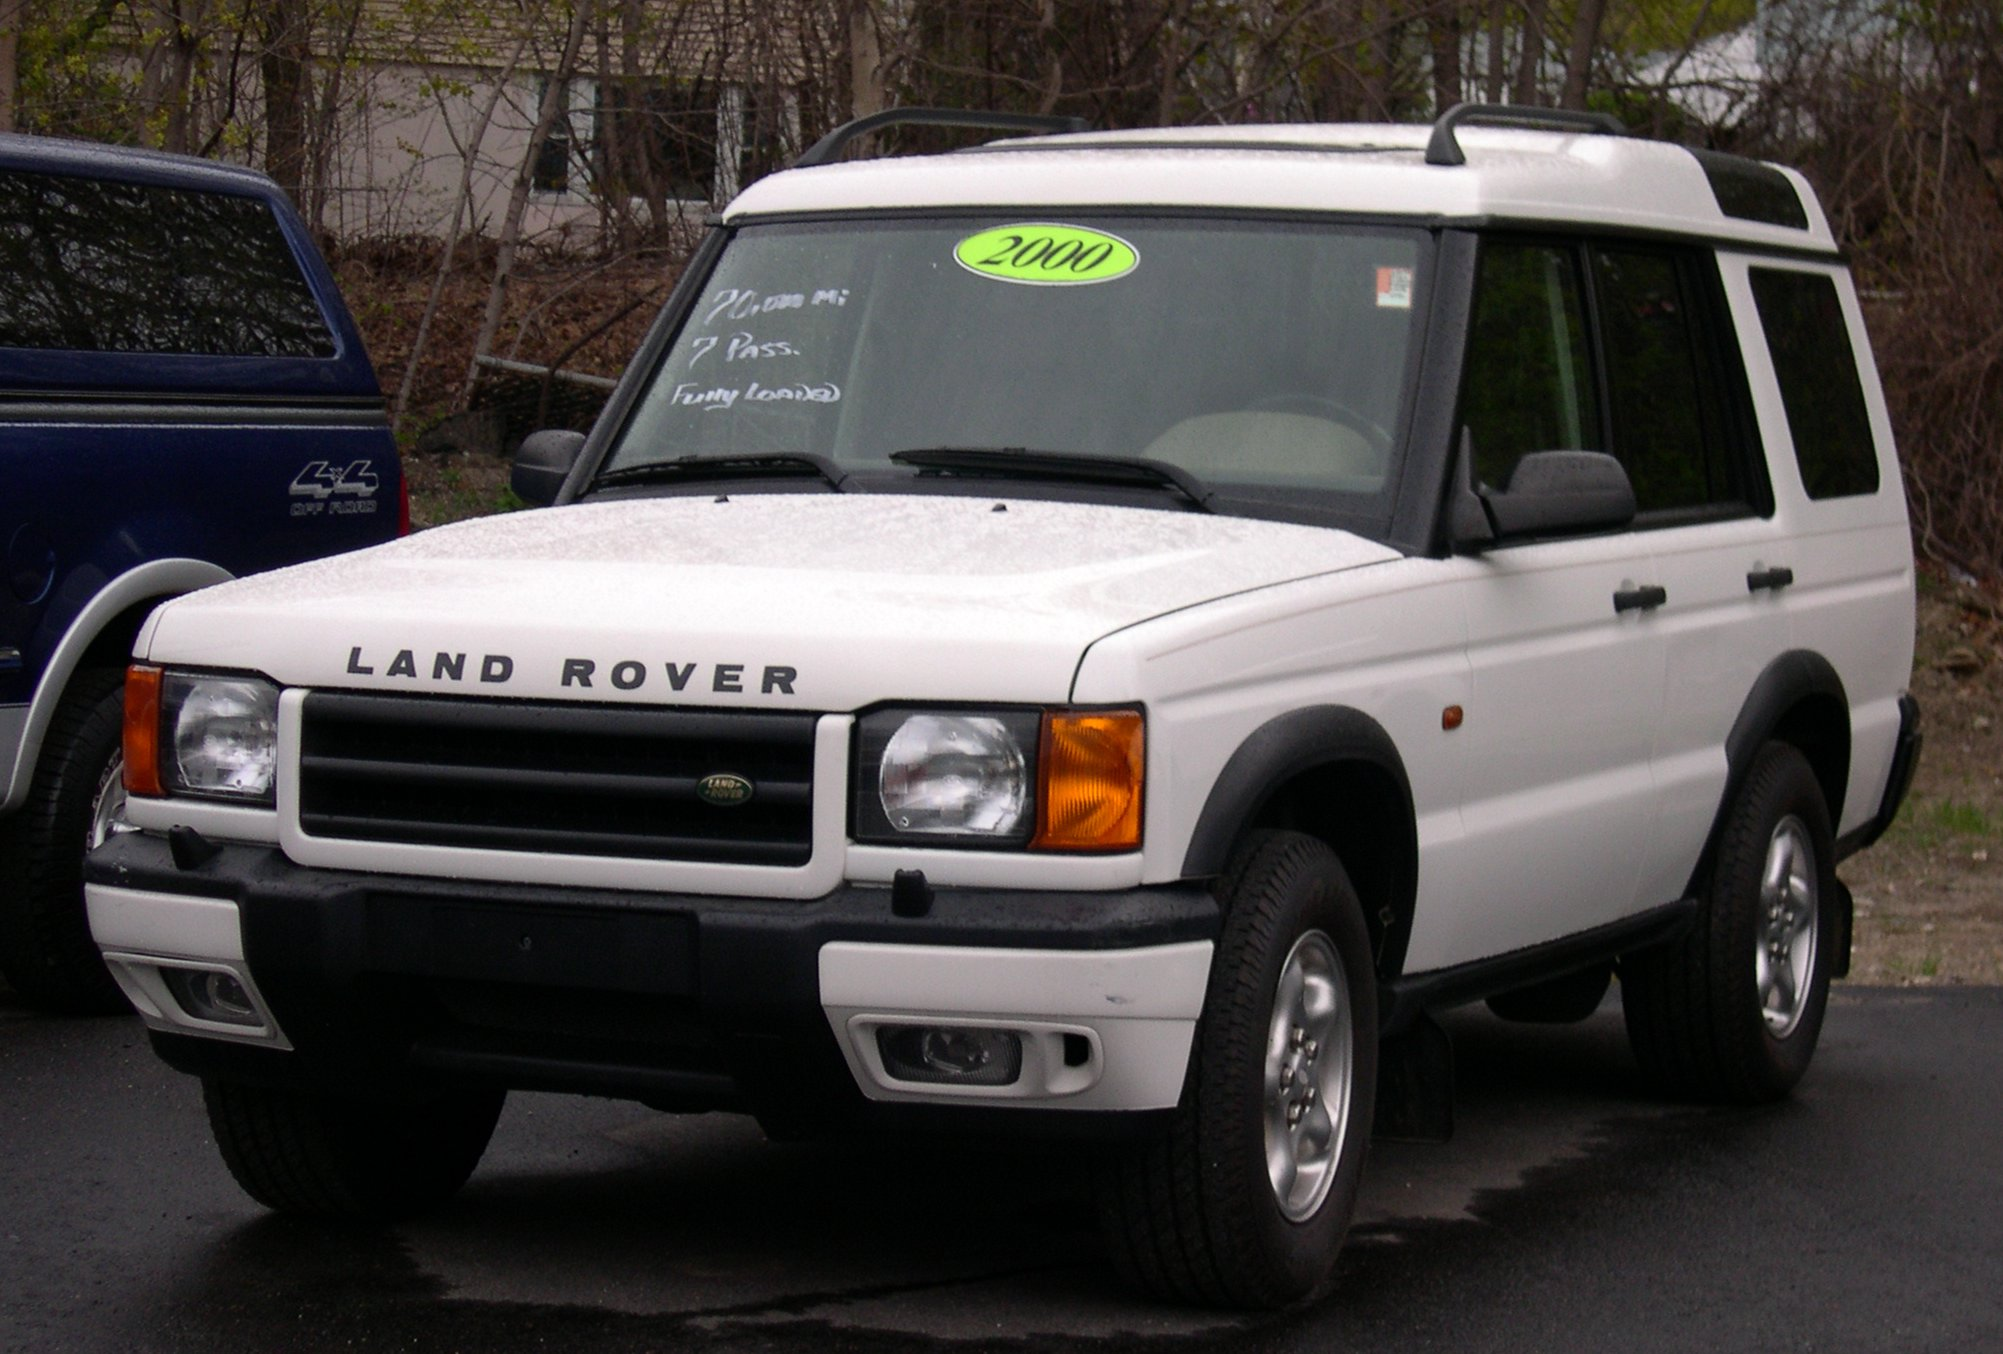 Land Rover Discovery 4.0 2006 photo - 4